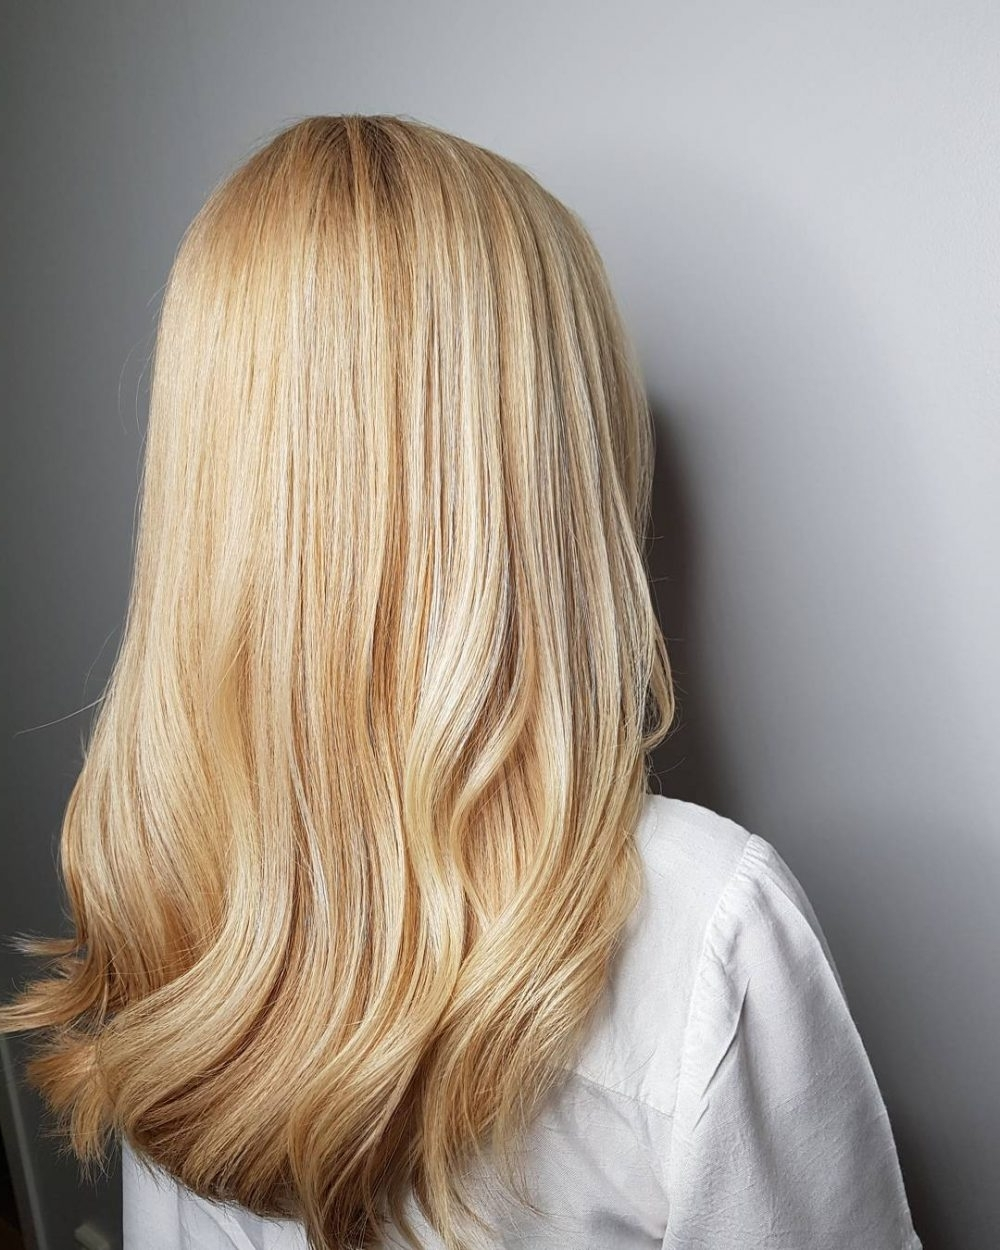 21 Hottest Honey Blonde Hair Color Ideas Of 2018 Inside Most Popular Honey Blonde Hairstyles (View 2 of 20)